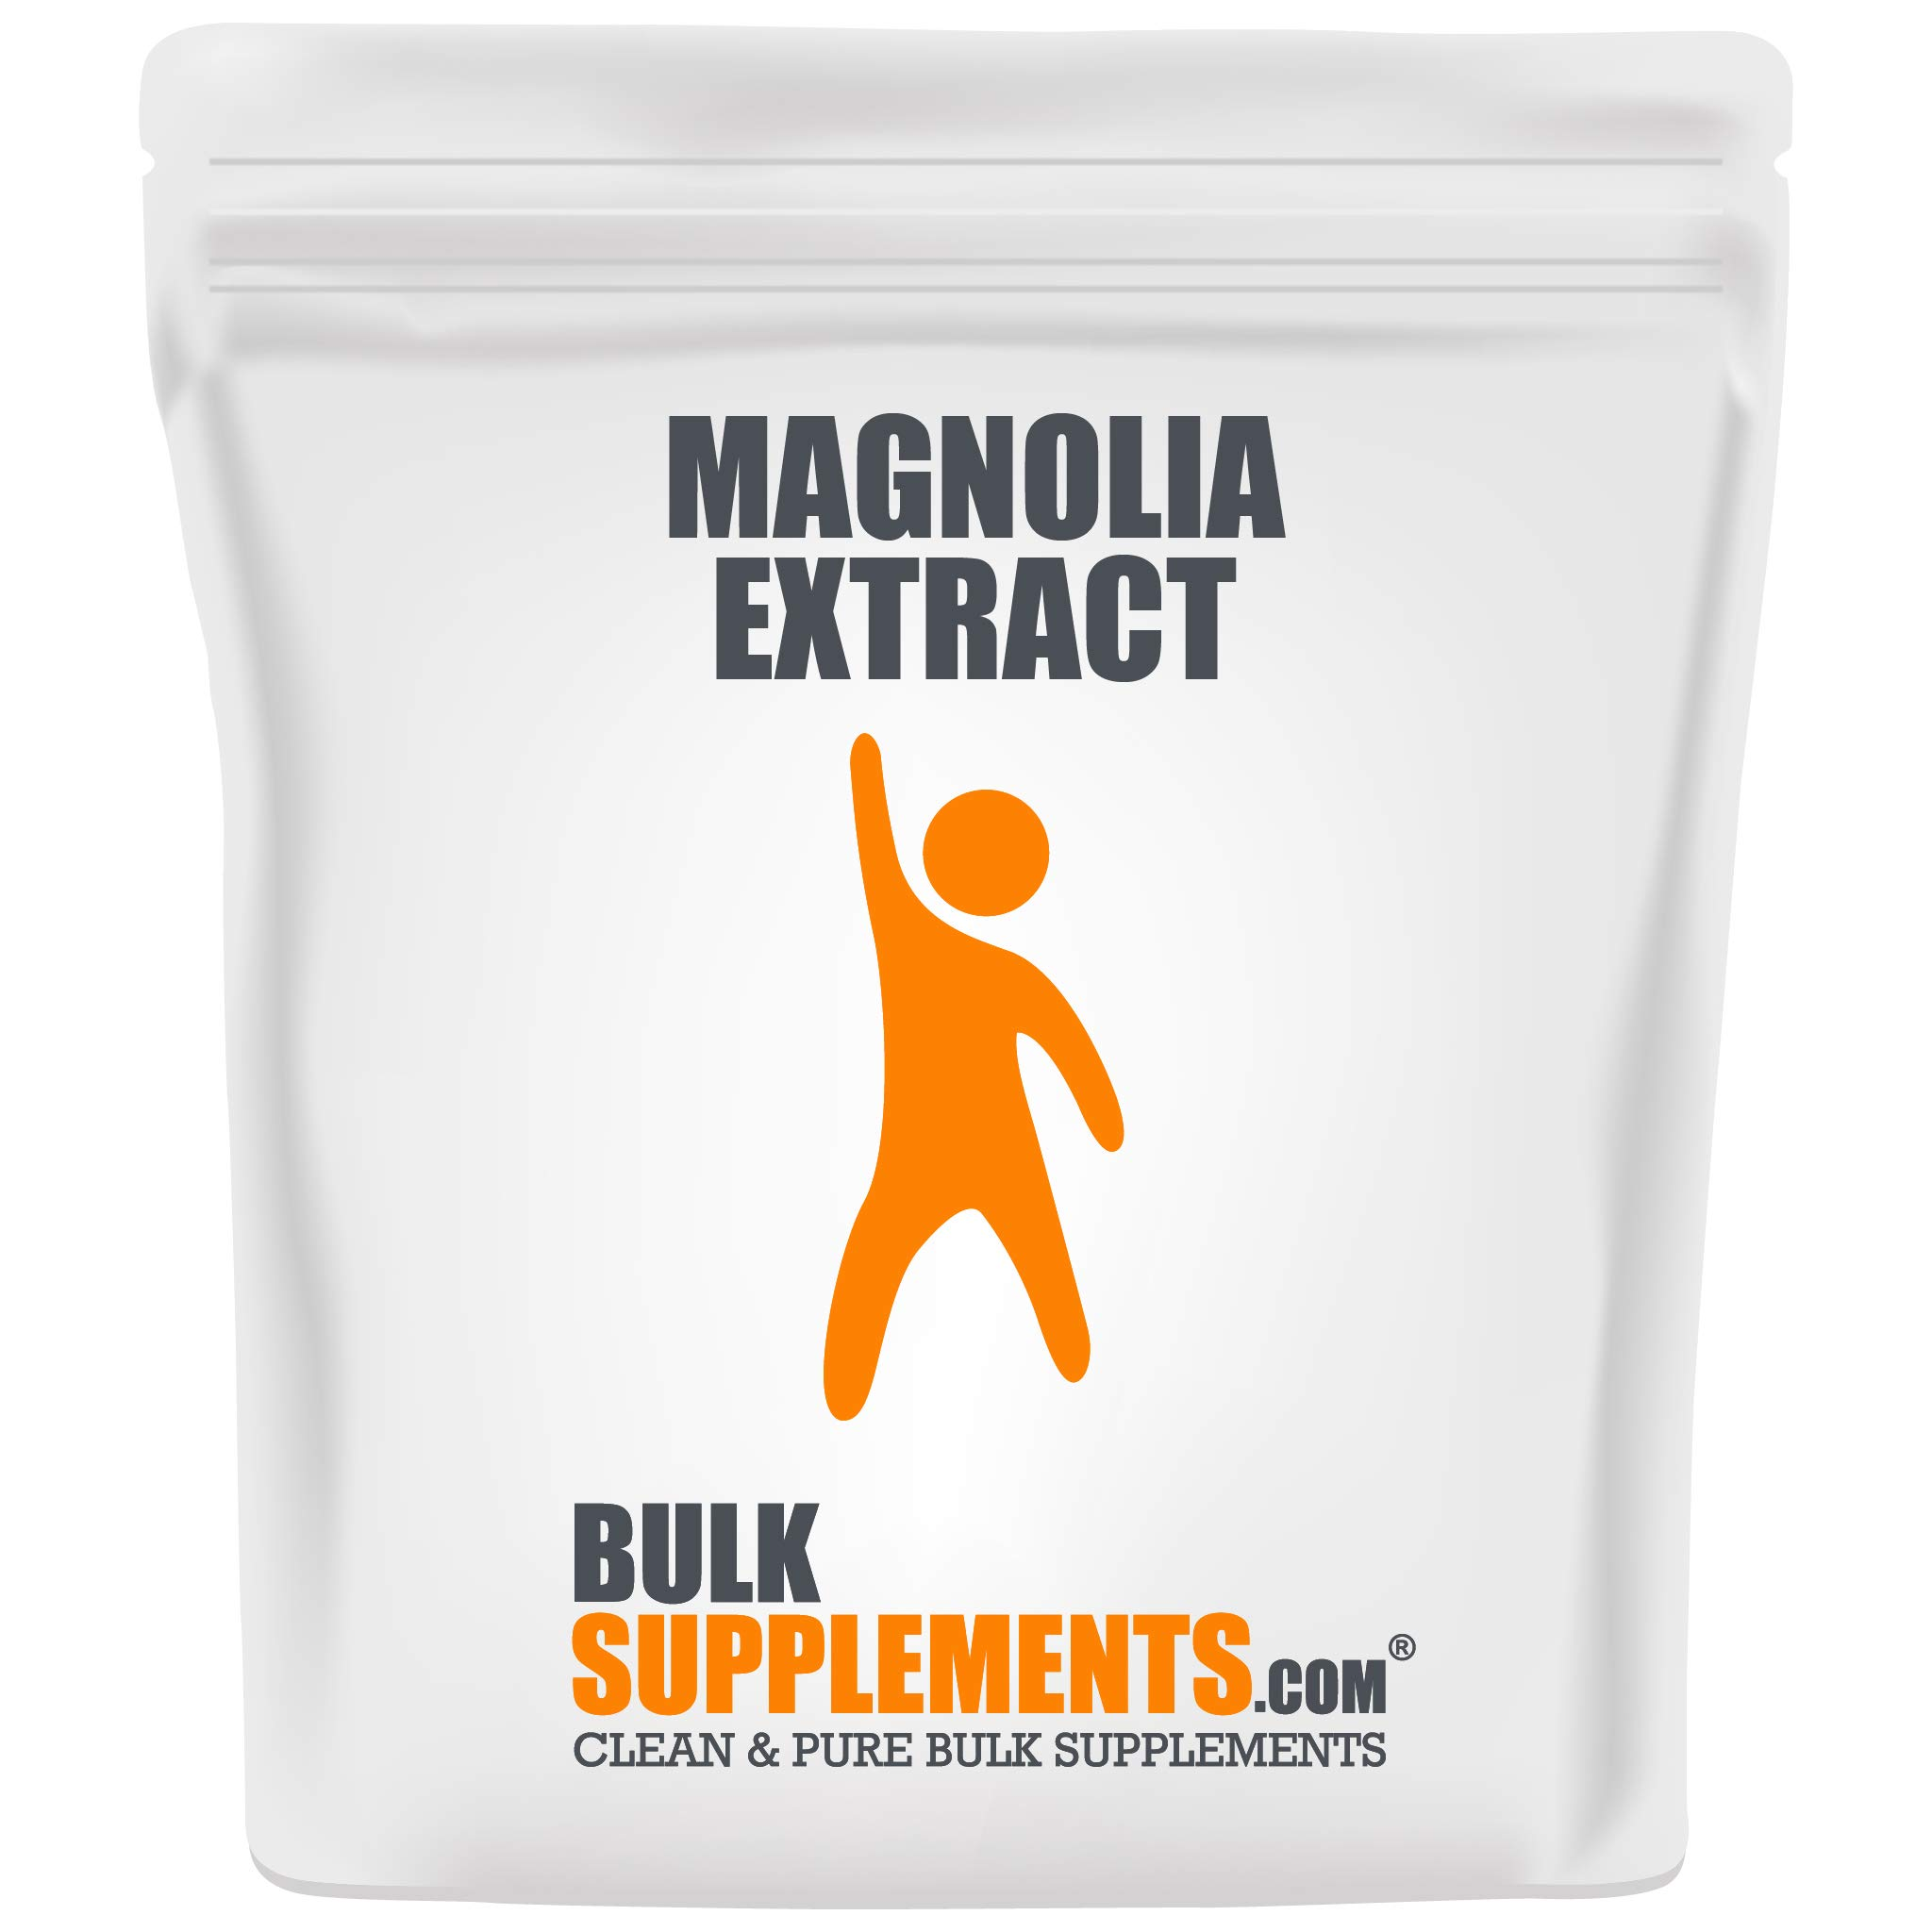 Bulksupplements.com Magnolia Extract Powder - Sleep Supplements for Adults - Anti Cortisol - Herbal Rest - Herb Extract (100 Grams)